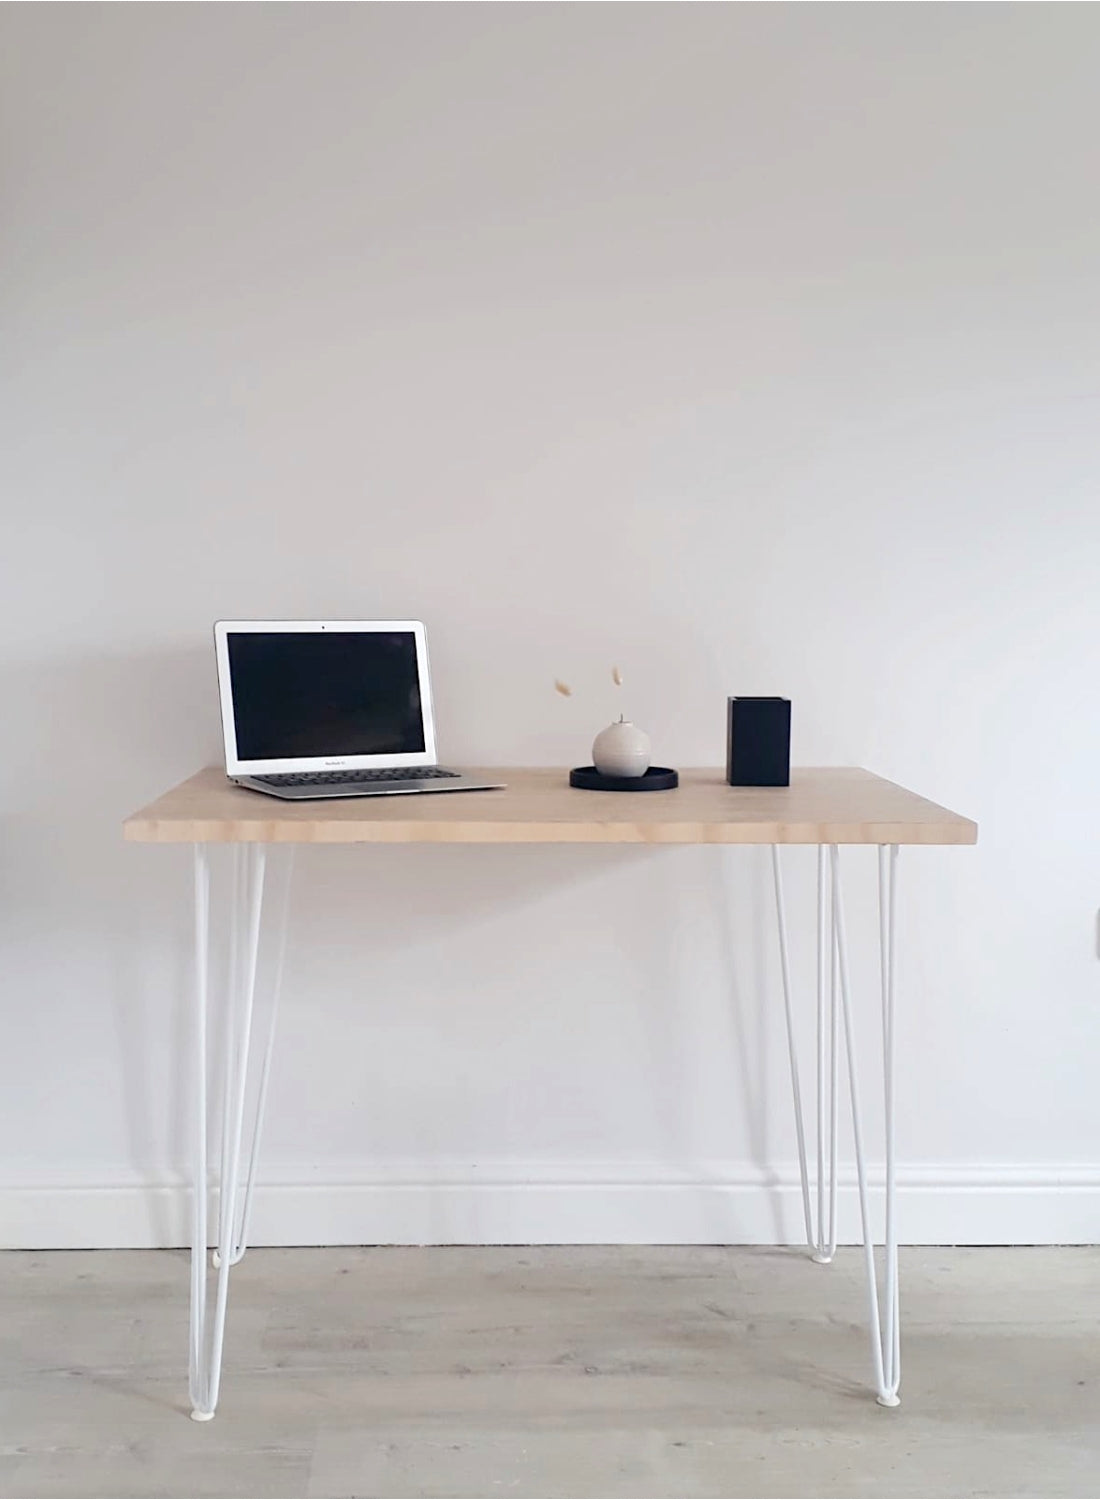 End Grain Home Office Desk with White Hairpin Legs